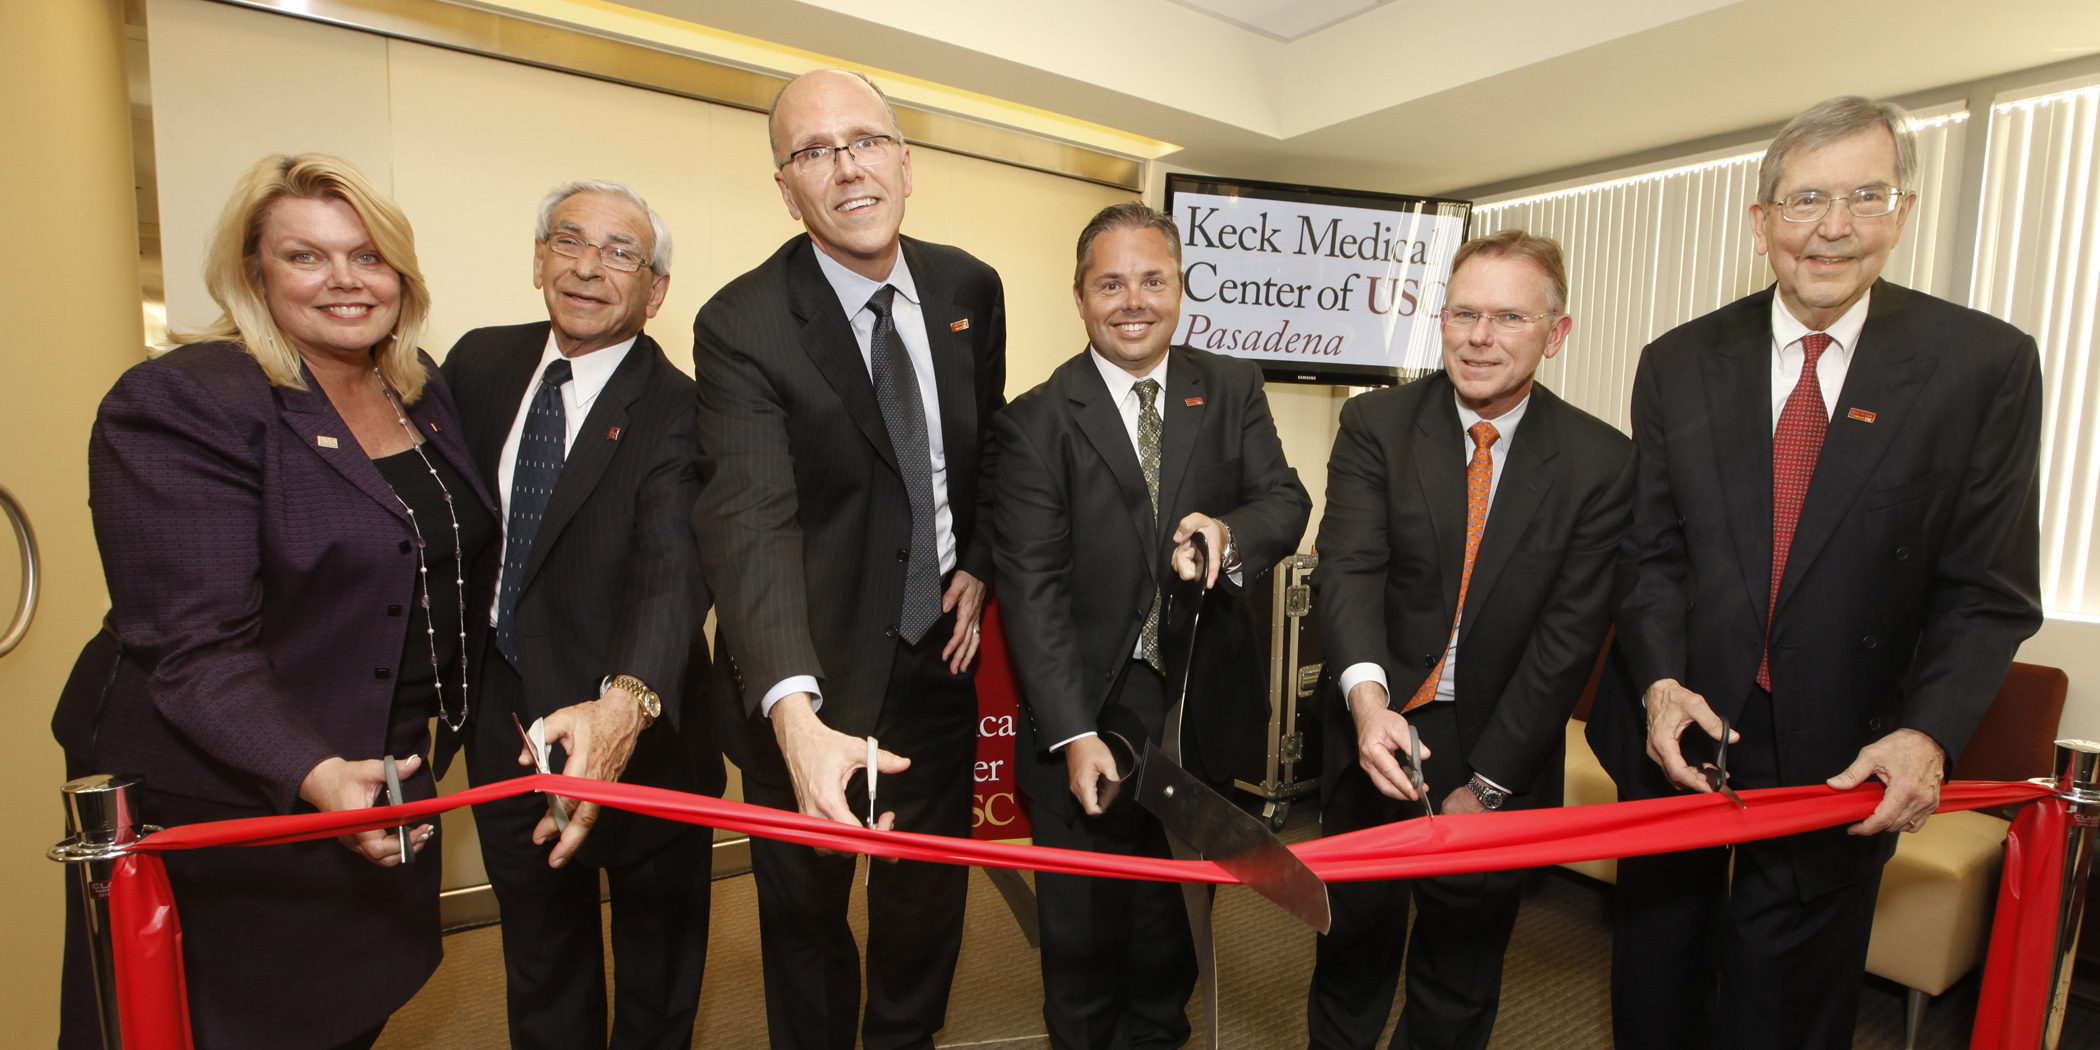 The administrators attend a ribbon-cutting ceremony in Pasadena.